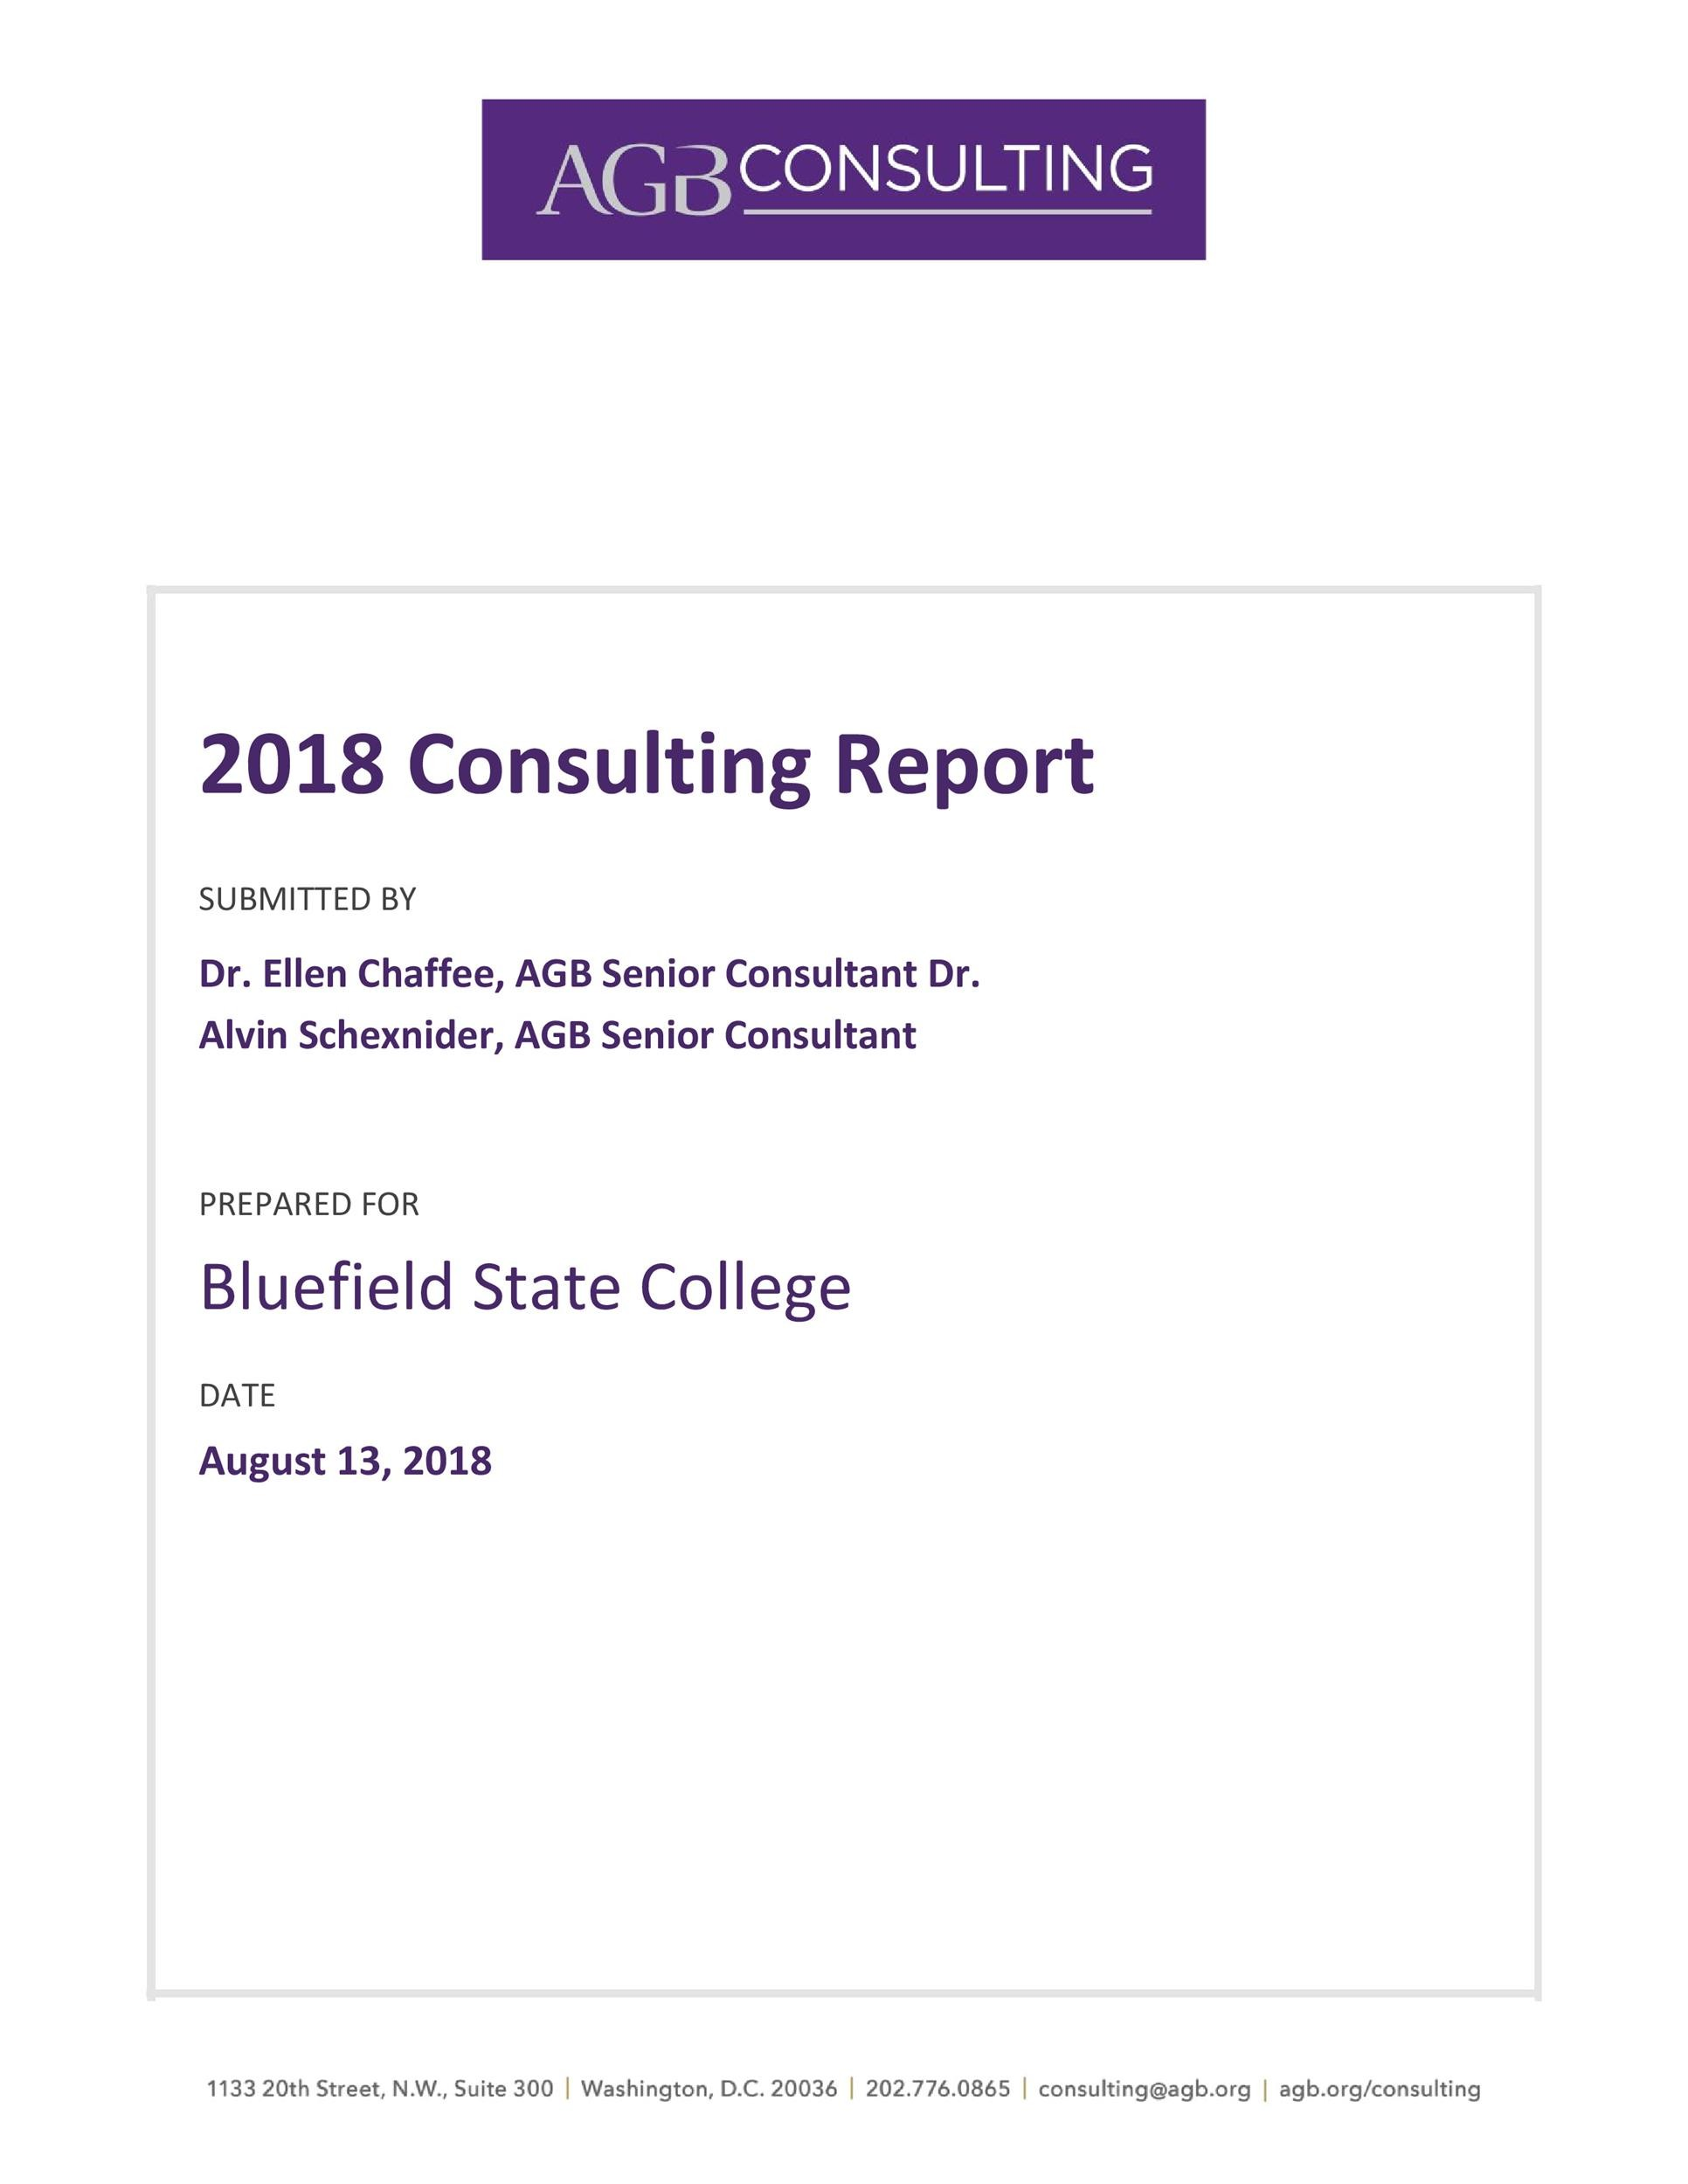 Free consulting report template 24